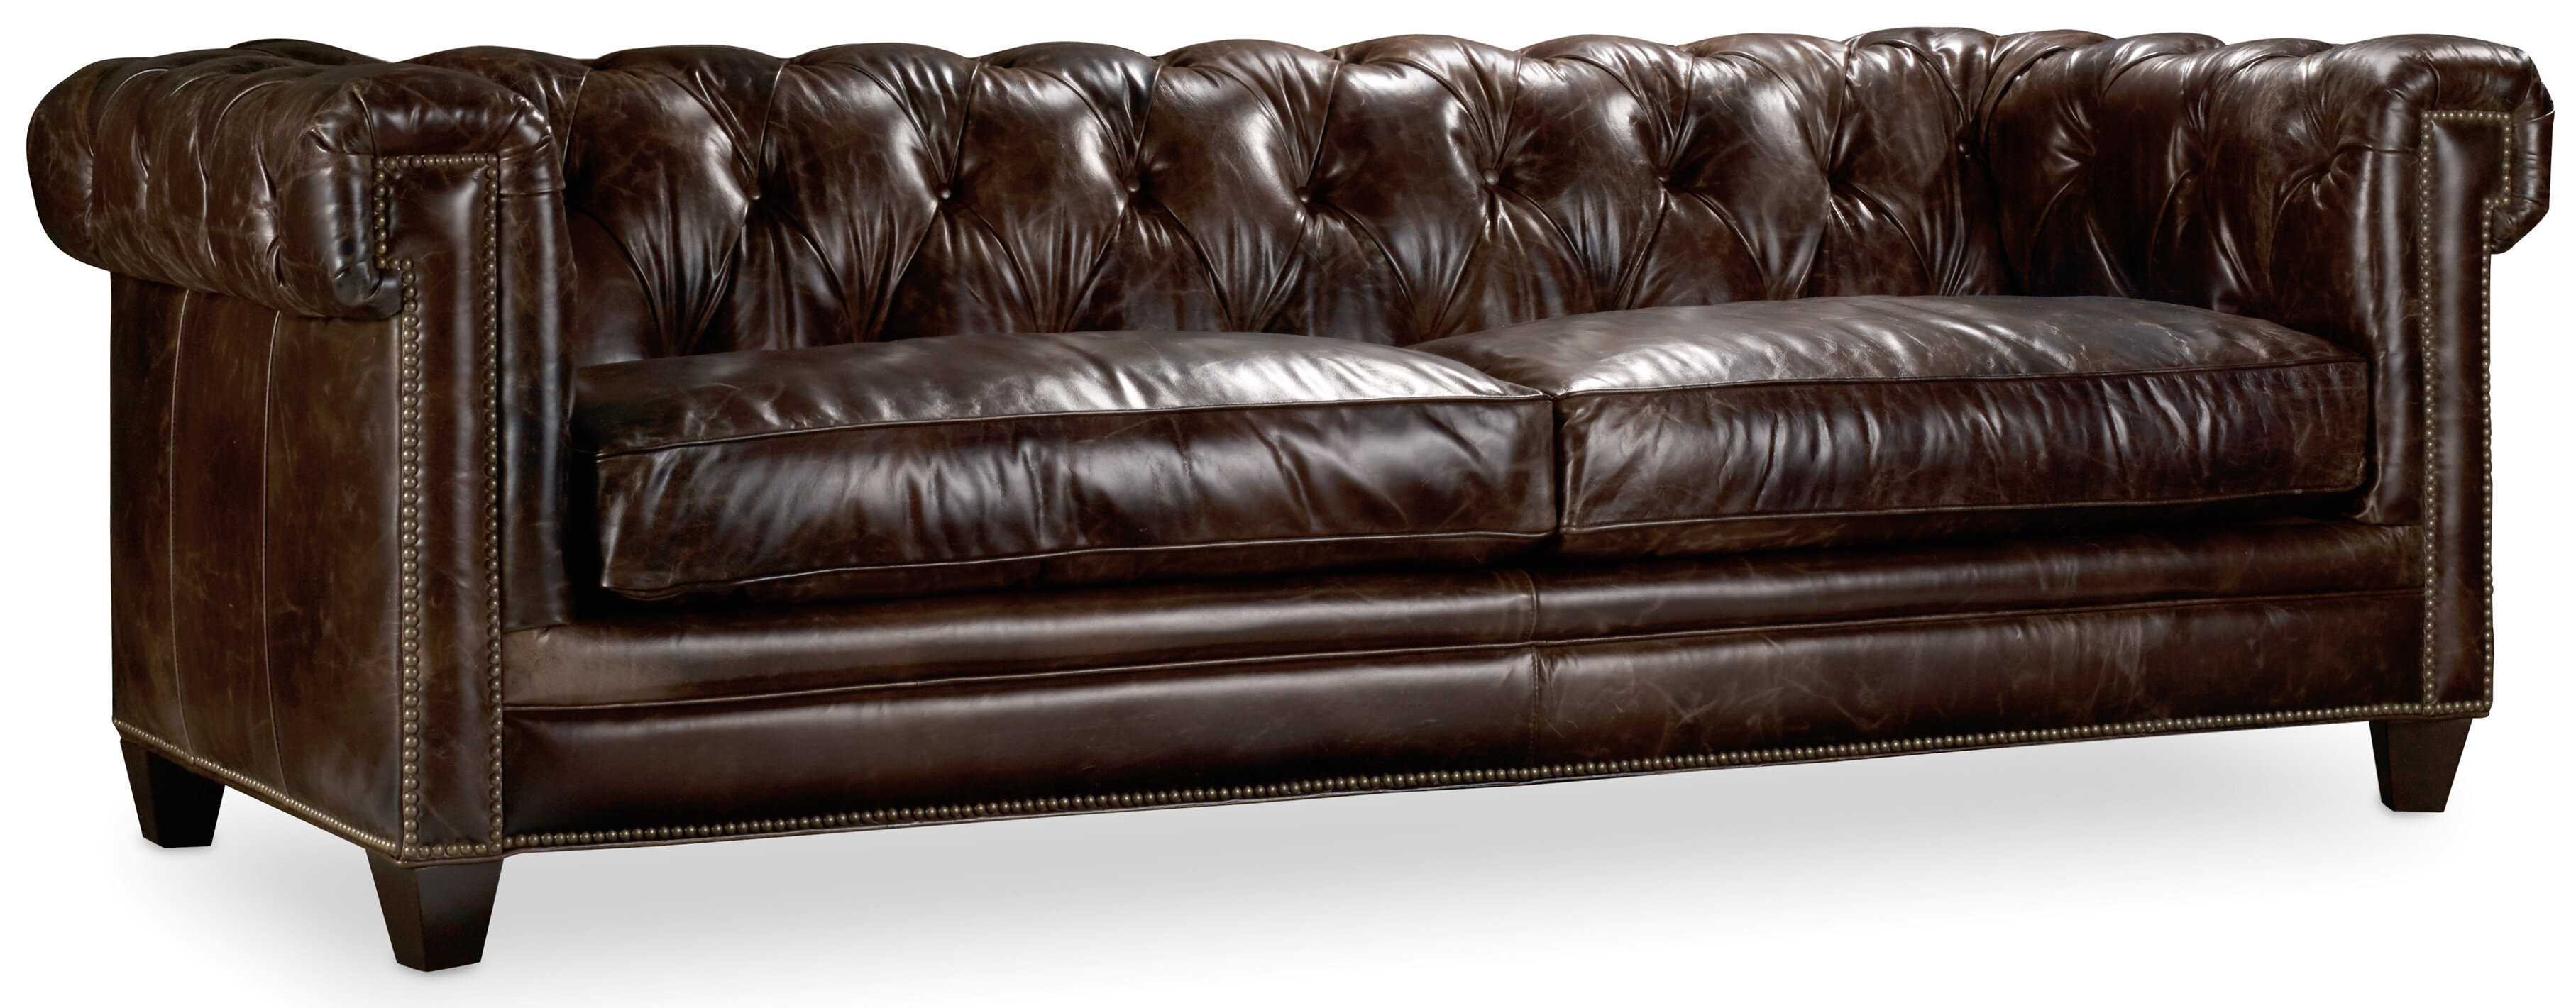 Hooker Furniture Imperial Regal Stationary Leather Chesterfield Sofa & Reviews